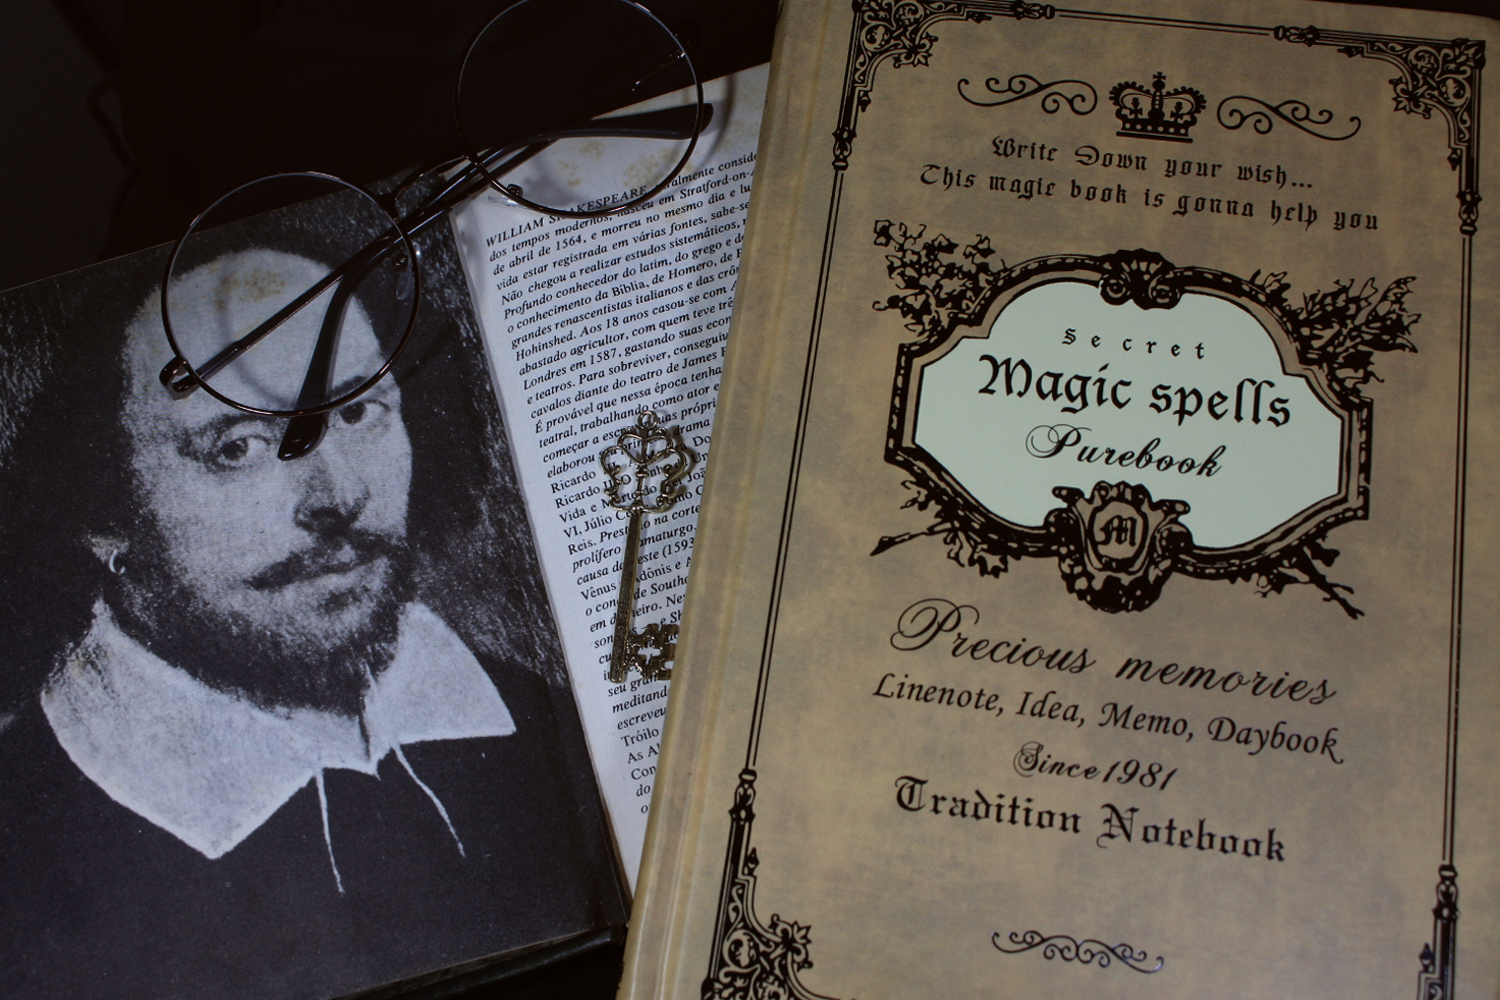 a close up image of a vitage-looking diary, laying close to a shakespeare book